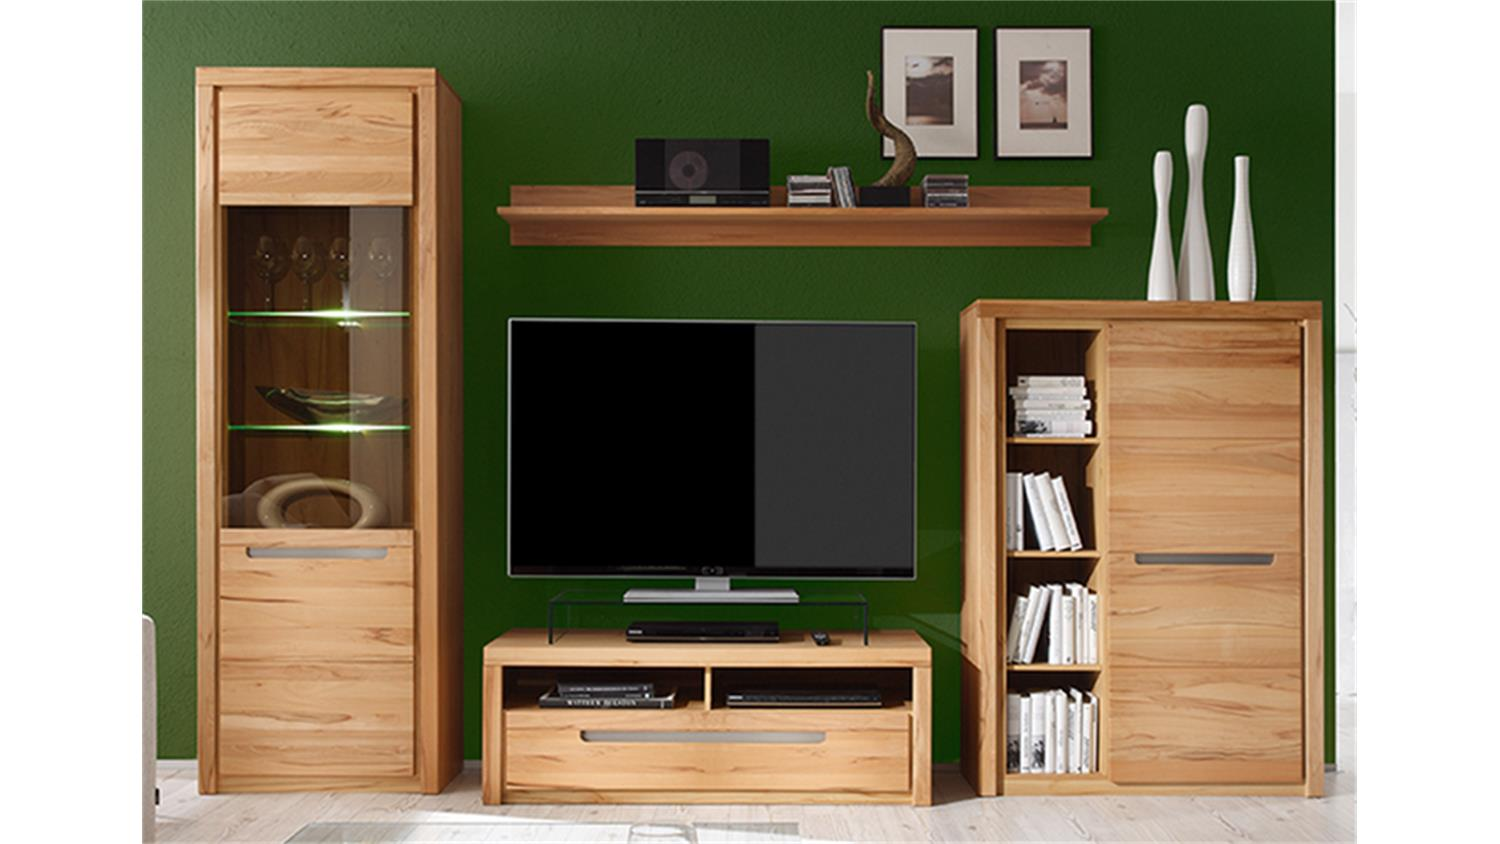 vitrine zino kern buche massiv lamellen inkl beleuchtung. Black Bedroom Furniture Sets. Home Design Ideas